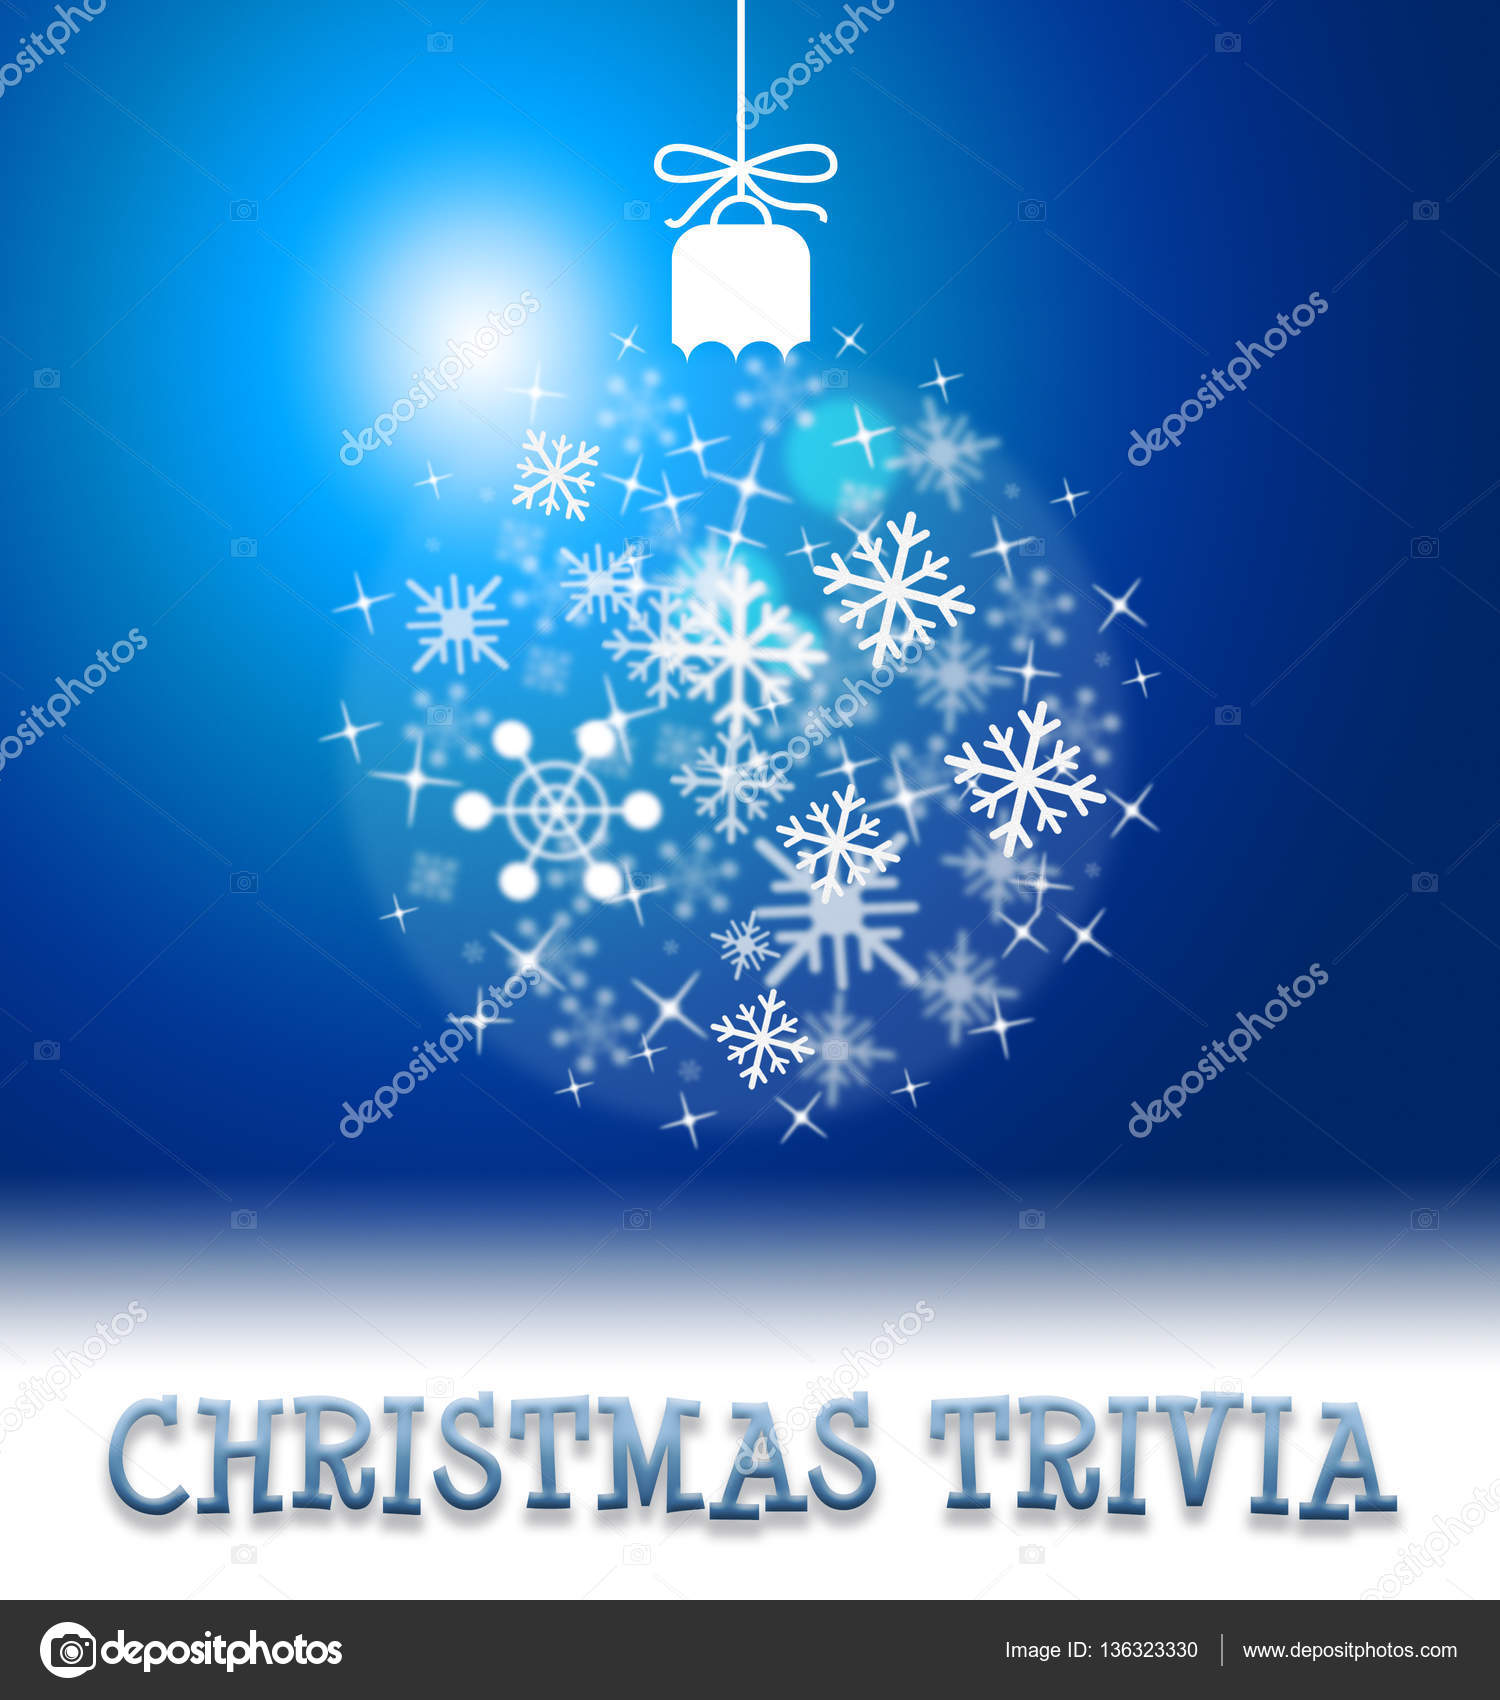 christmas trivia ball decoration showing xmas facts yuletide quiz photo by stuartmiles - Christmas Trivia Facts